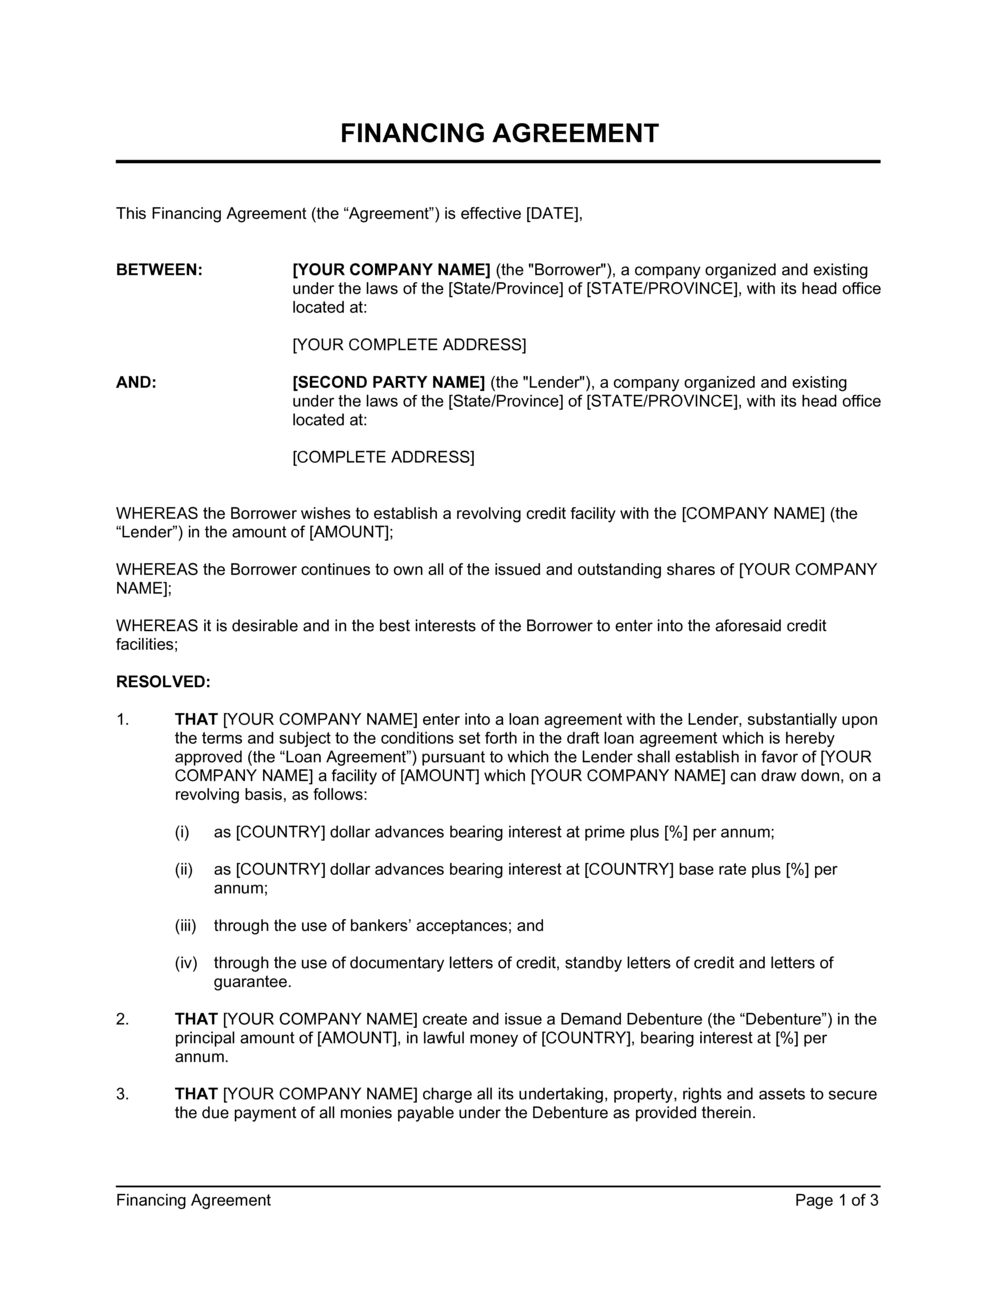 Business-in-a-Box's Financing Agreement Short Template